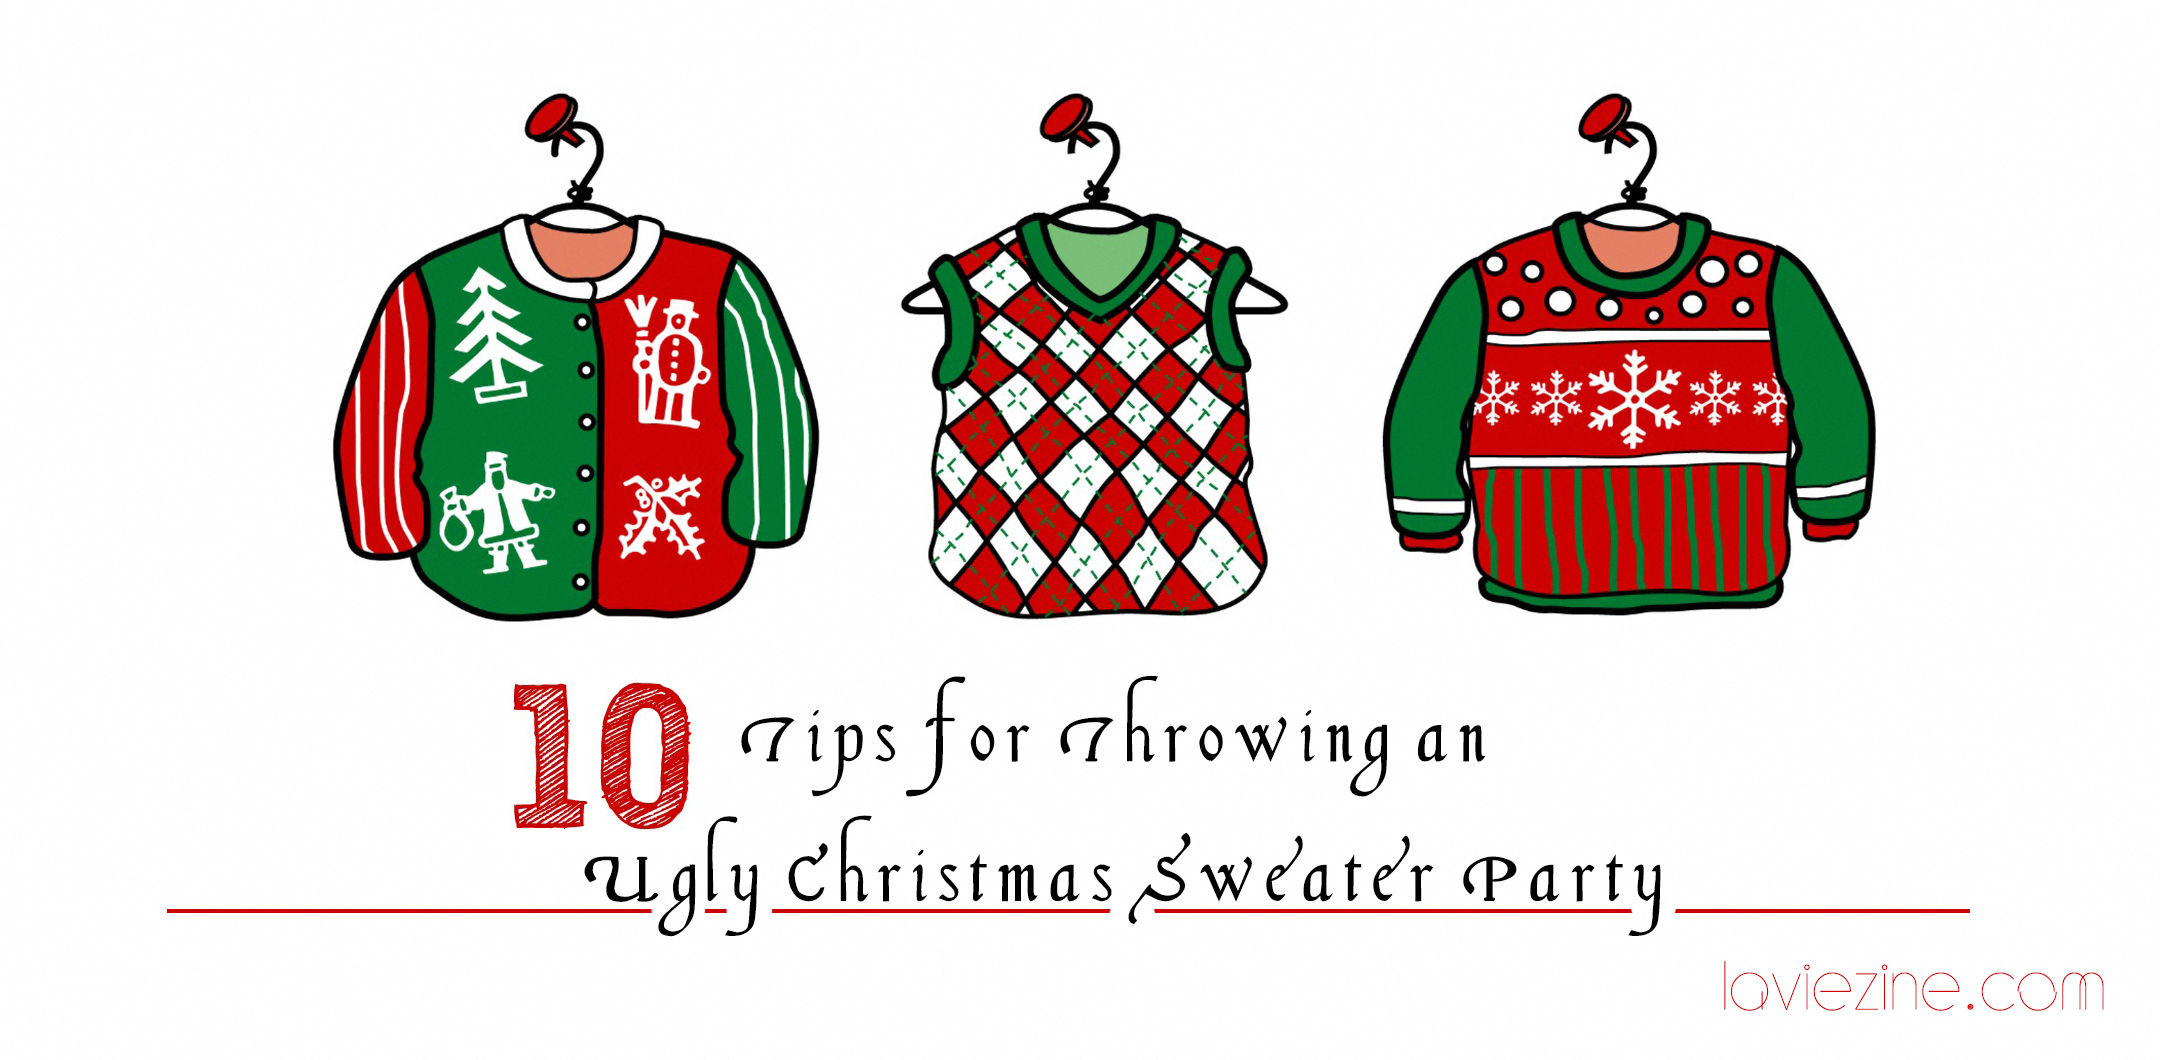 10 Tips for Throwing An Ugly Christmas Sweater Party.